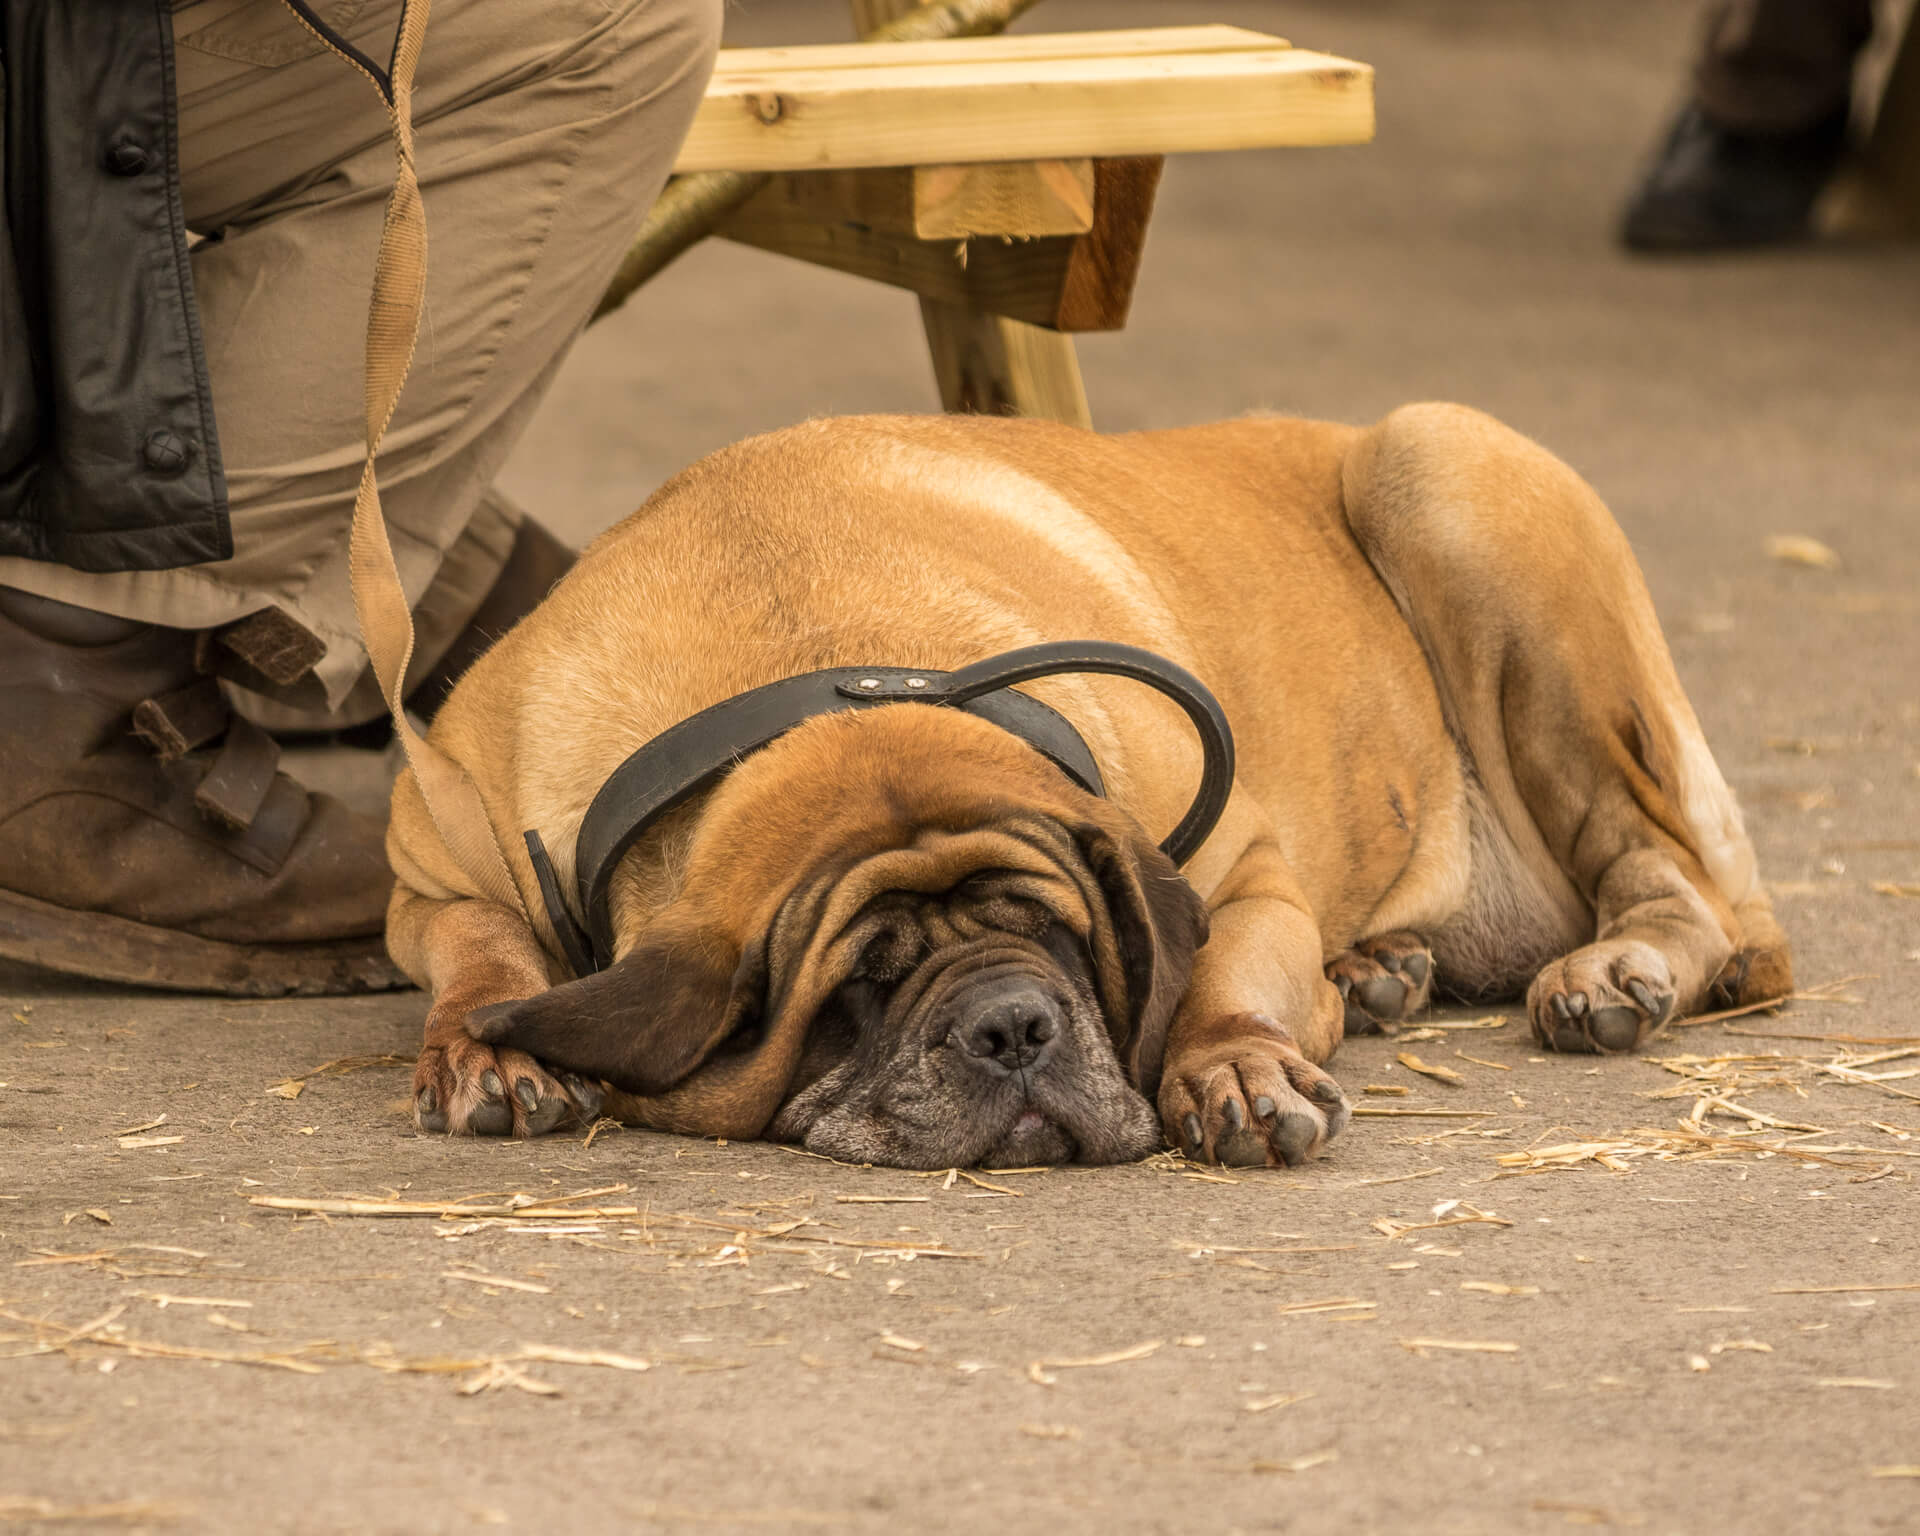 A rather overweight light Brown coloured Mastiff type of dog lays sleeping. He wears a substantial leather collar as lays on a concrete floor. His owner sits next to him on a wooden bench.